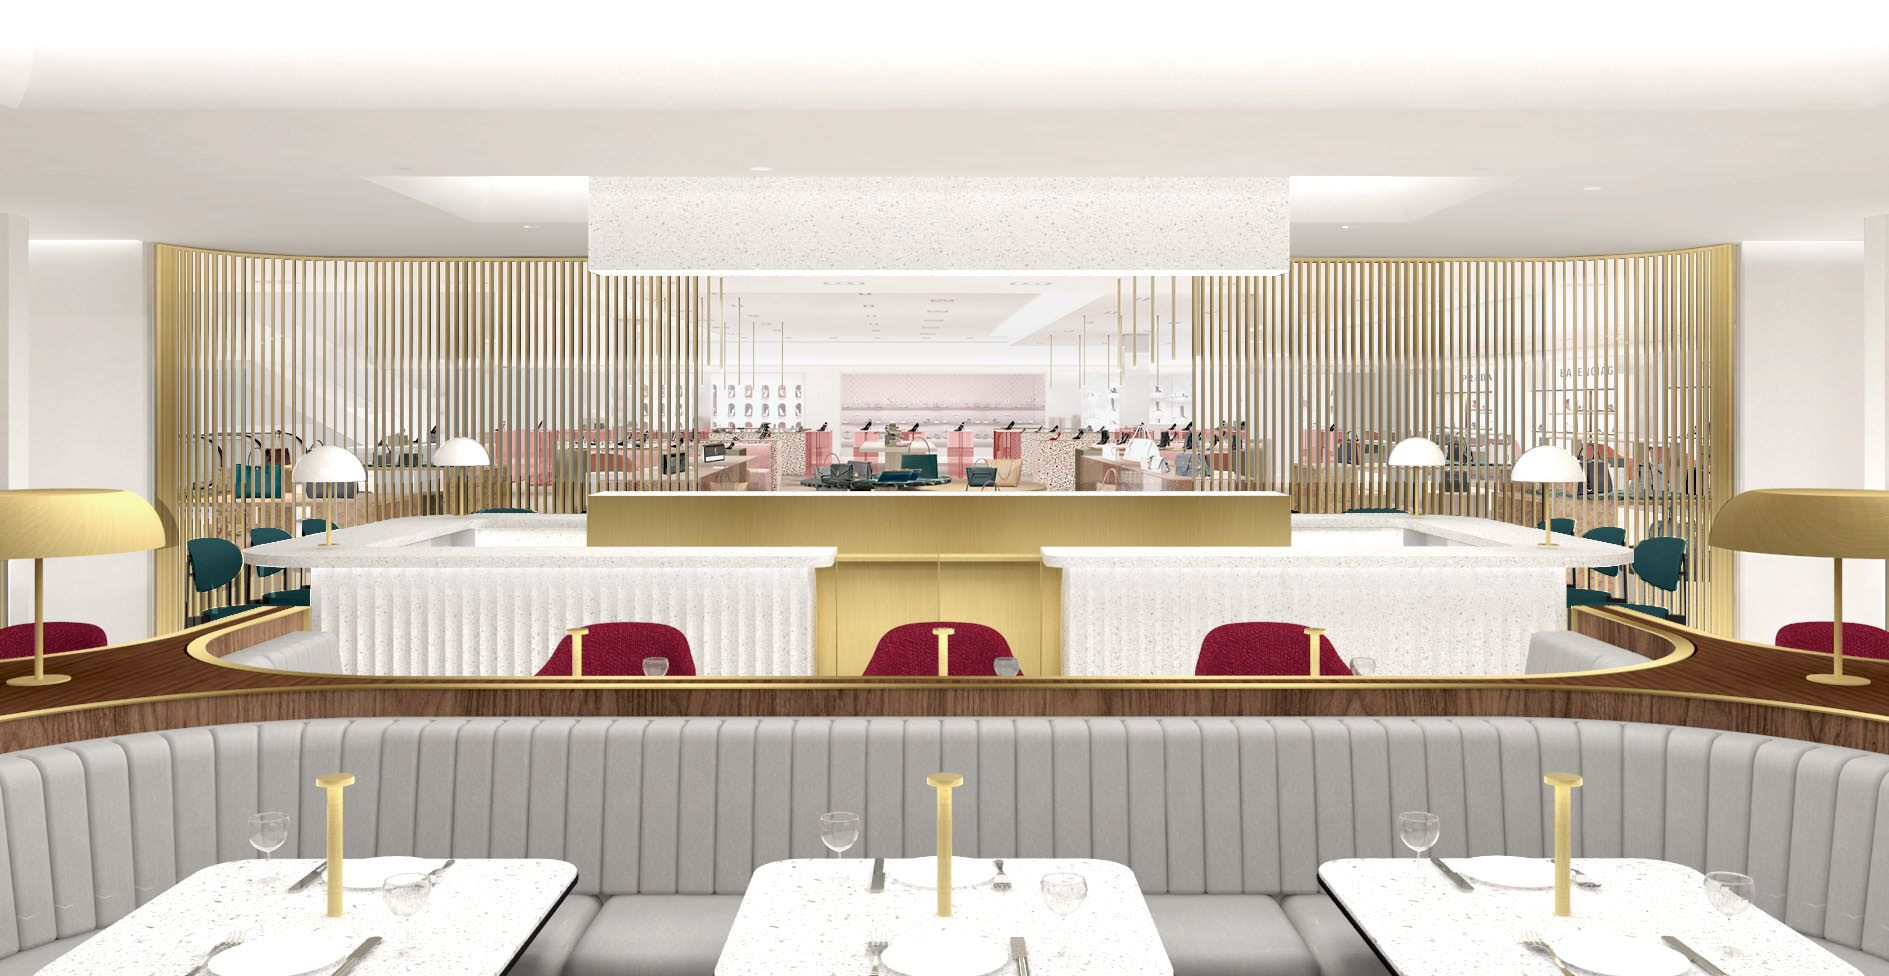 Rendering of the new 'Colette Grand Café' opening at Holts Bloor in the fall of 2019. Rendering: Holt Renfrew/Alex Cochrane Architects